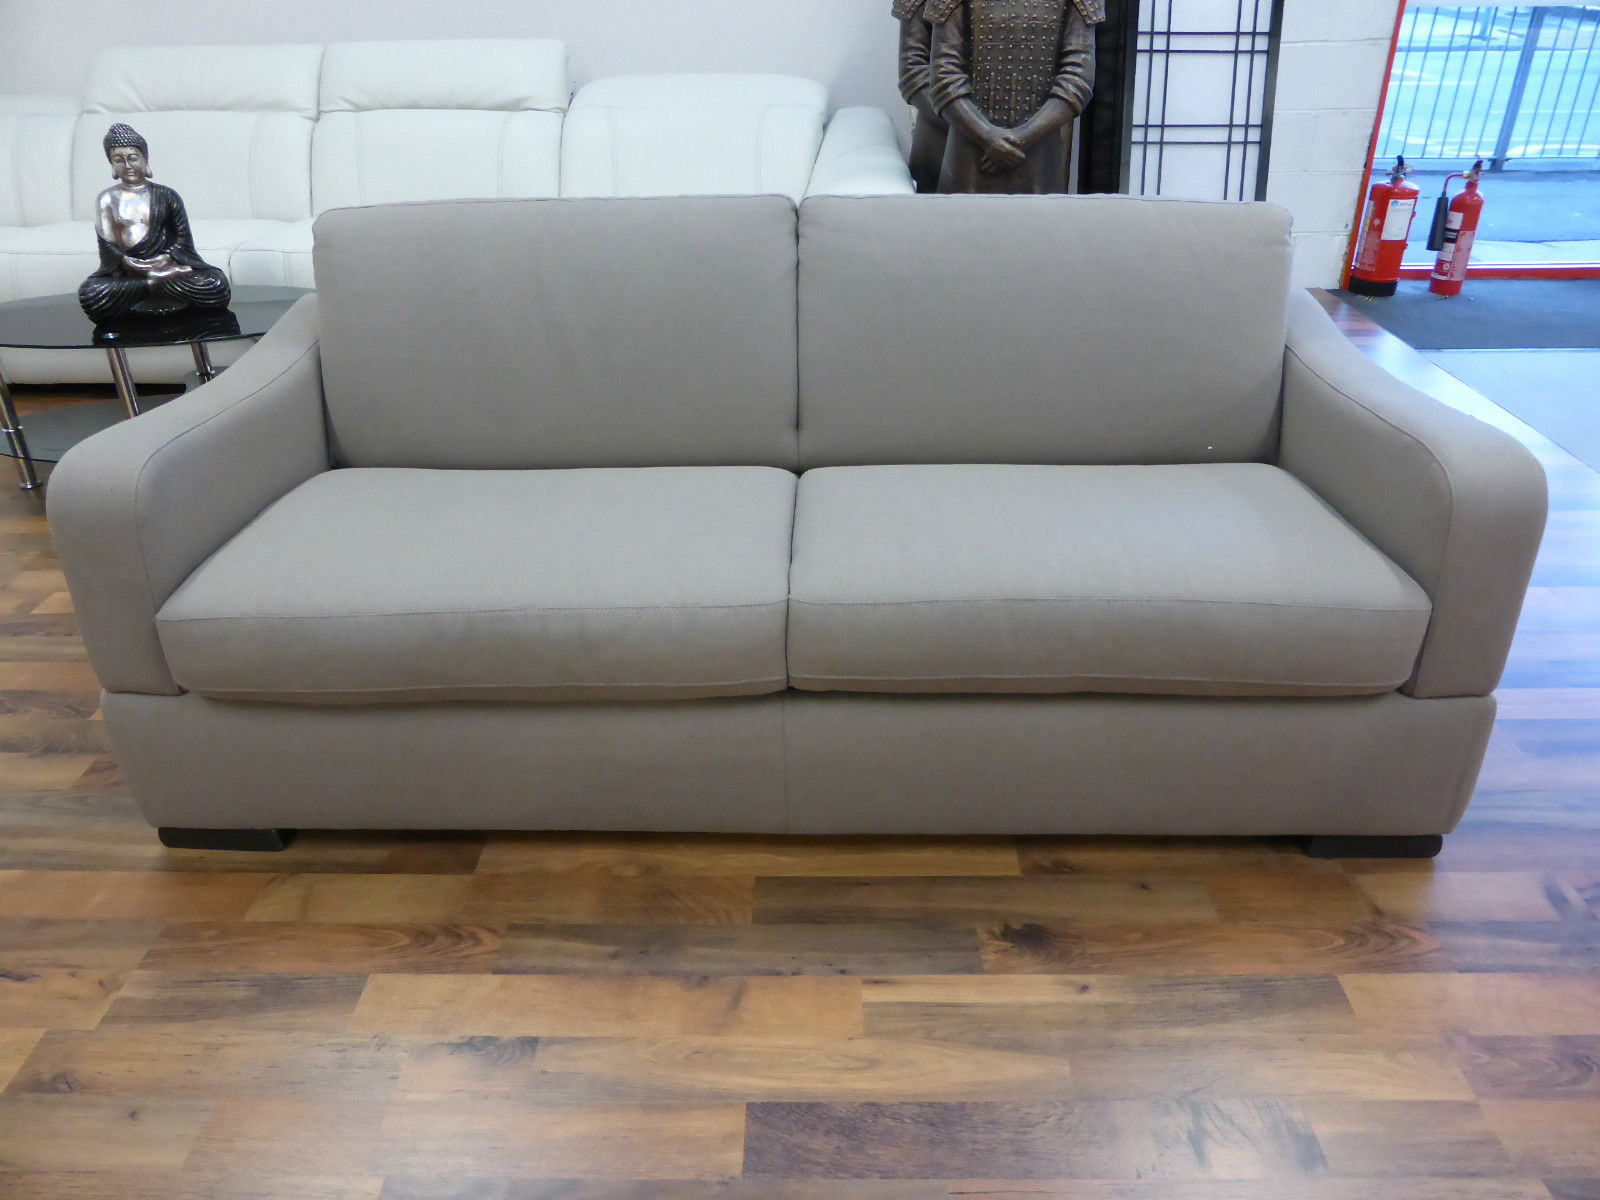 Italsofa Jean 3 Seater Sofa Bed Furnimax Brands Outlet